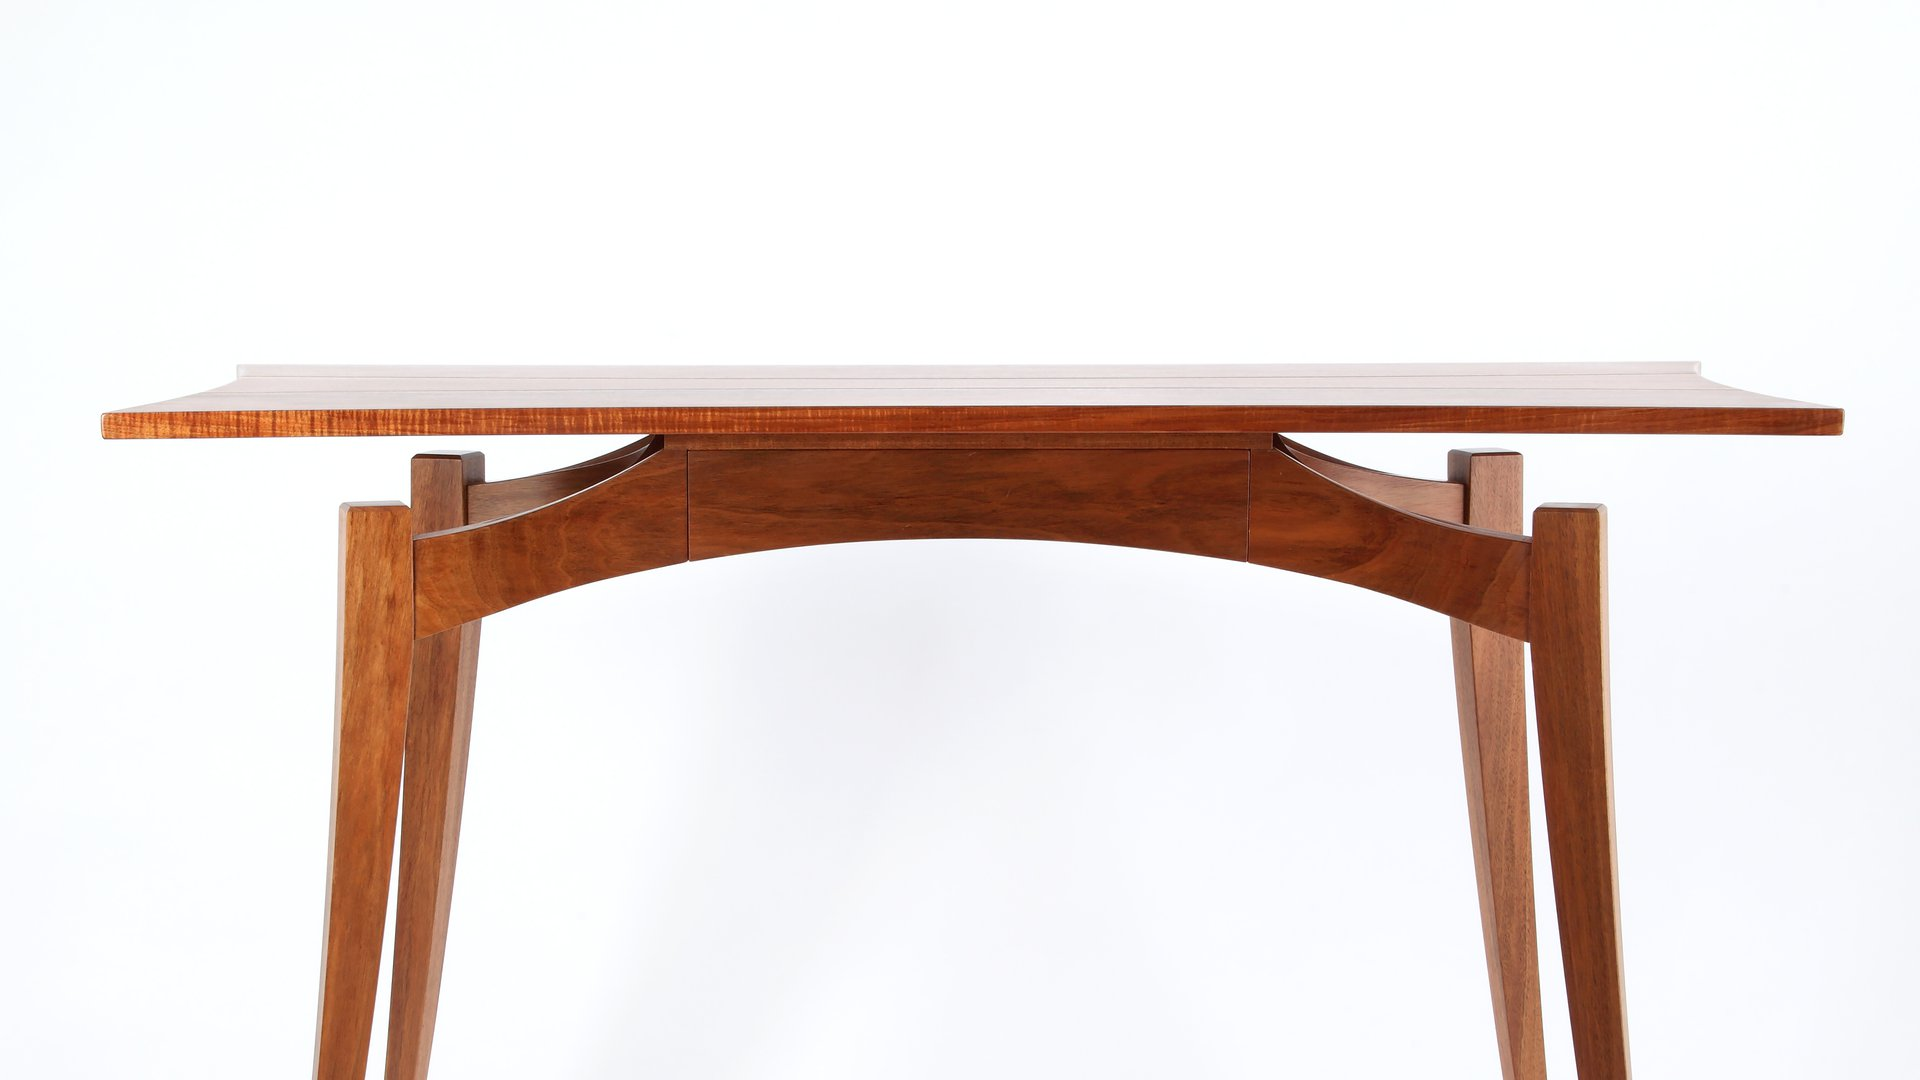 Ben Perry Mantis Table